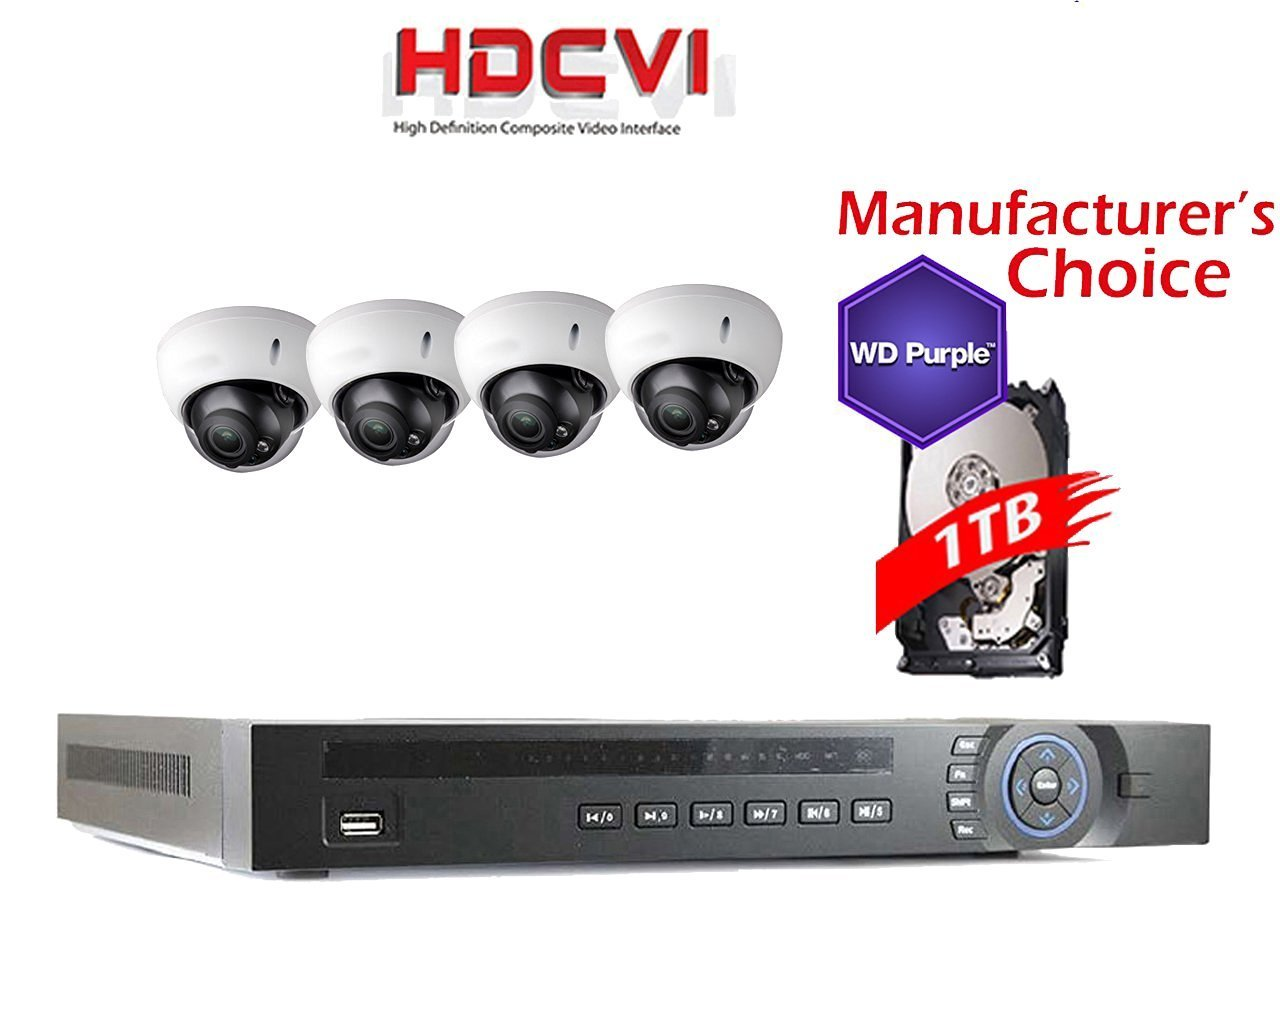 iCare HDCVI 1080P Package: 4CH HDCVI with 1TB WD Purple HDD Pre-installed + 4 x 2MP Outdoor IR Dome Camera, 2 years warranty, Local US Support